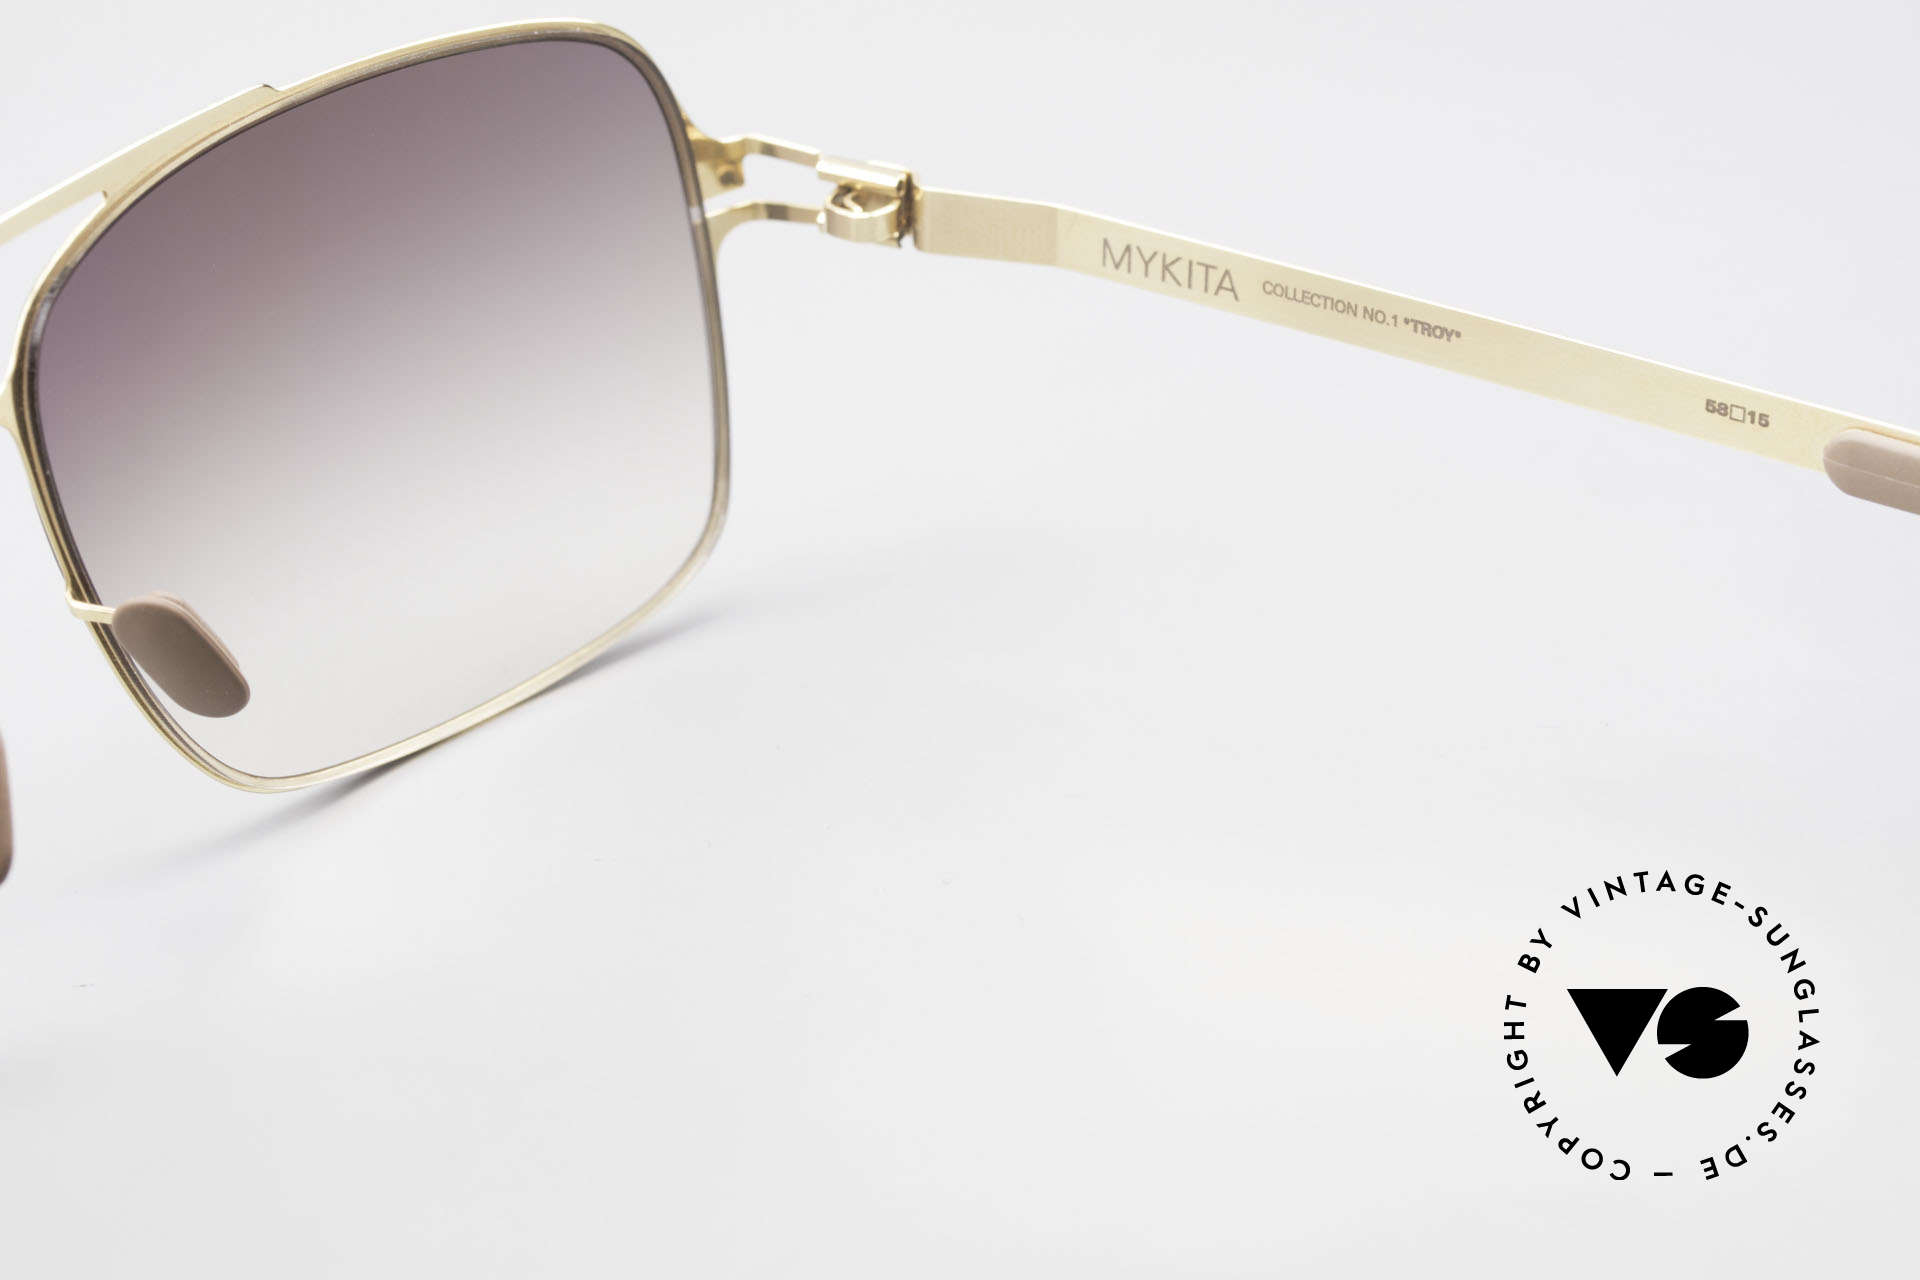 Mykita Troy Mykita Collection No 1 Shades, thus, now available from us (unworn and with orig. case), Made for Men